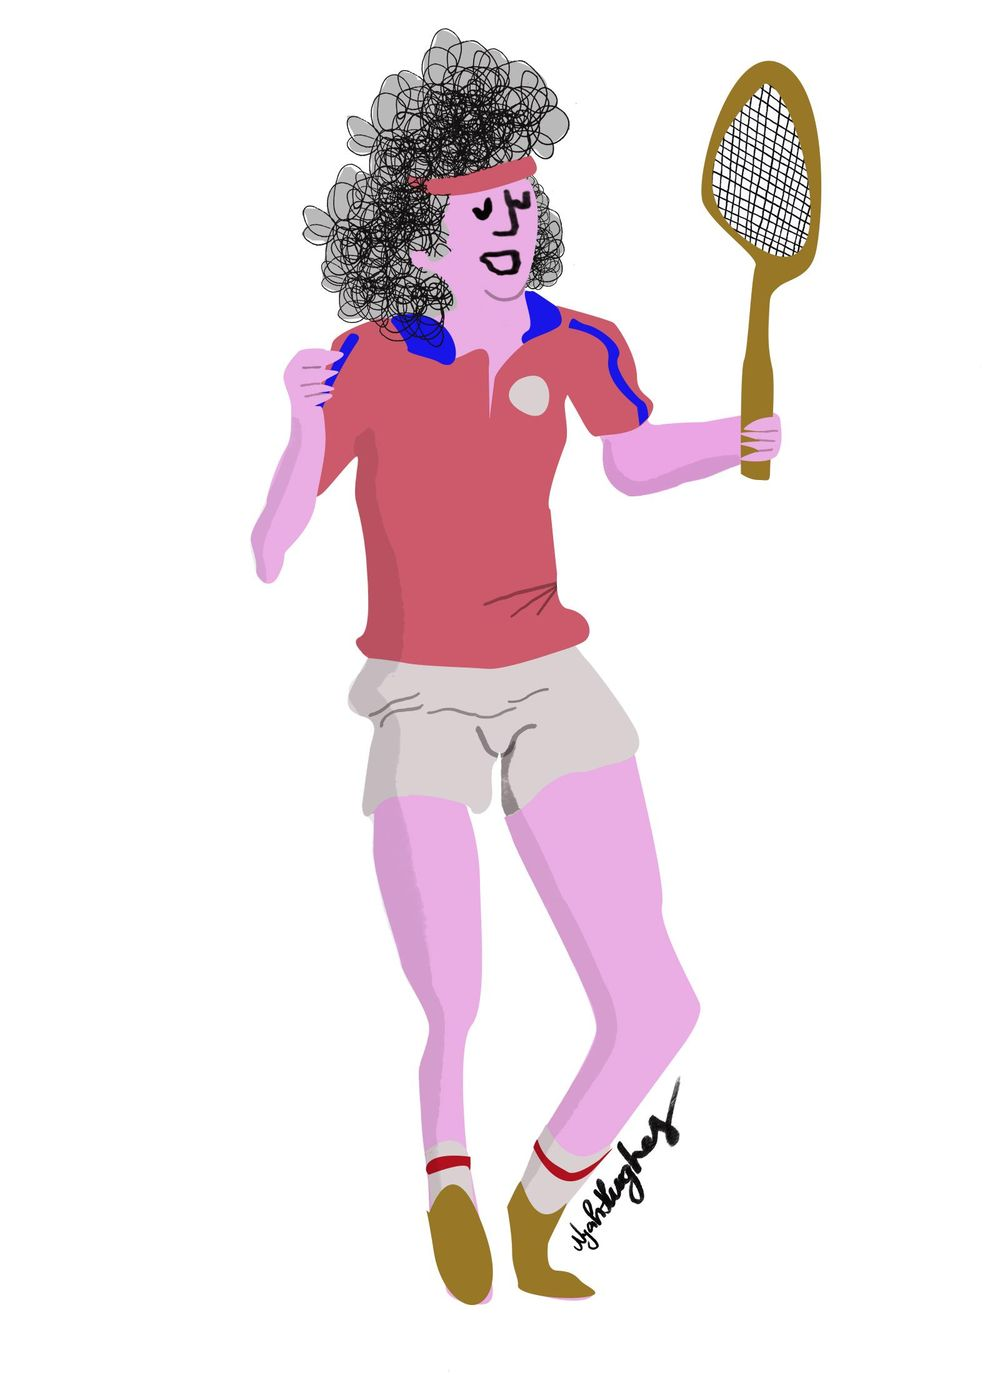 Tennis Player - image 1 - student project